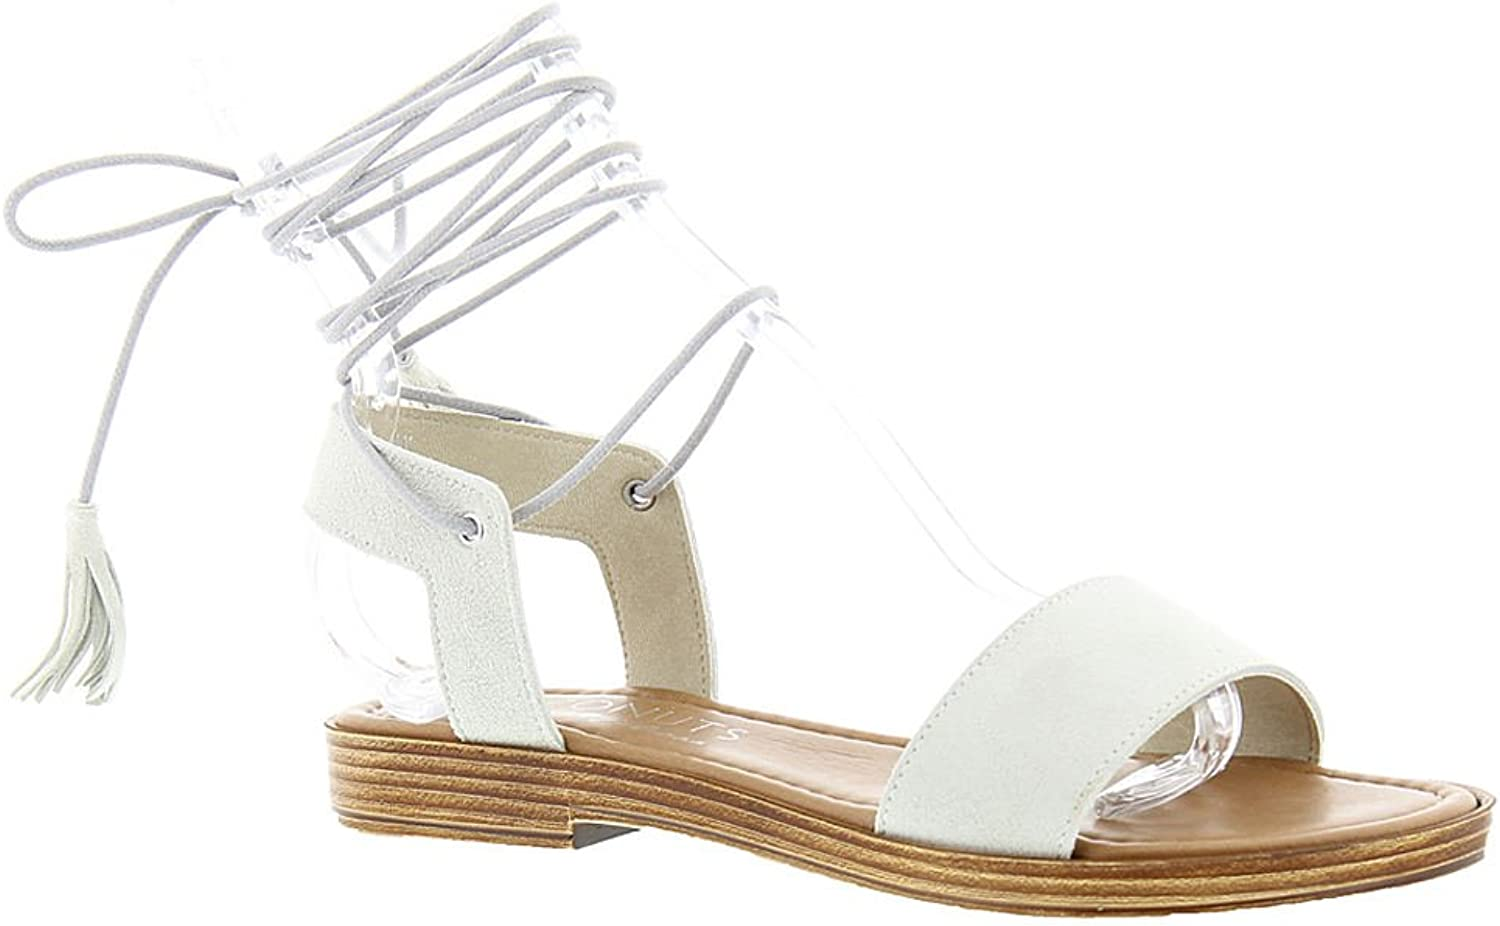 Matisse Womens Sting Suede Open Toe Casual Slide Sandals, Natural, Size 6.0